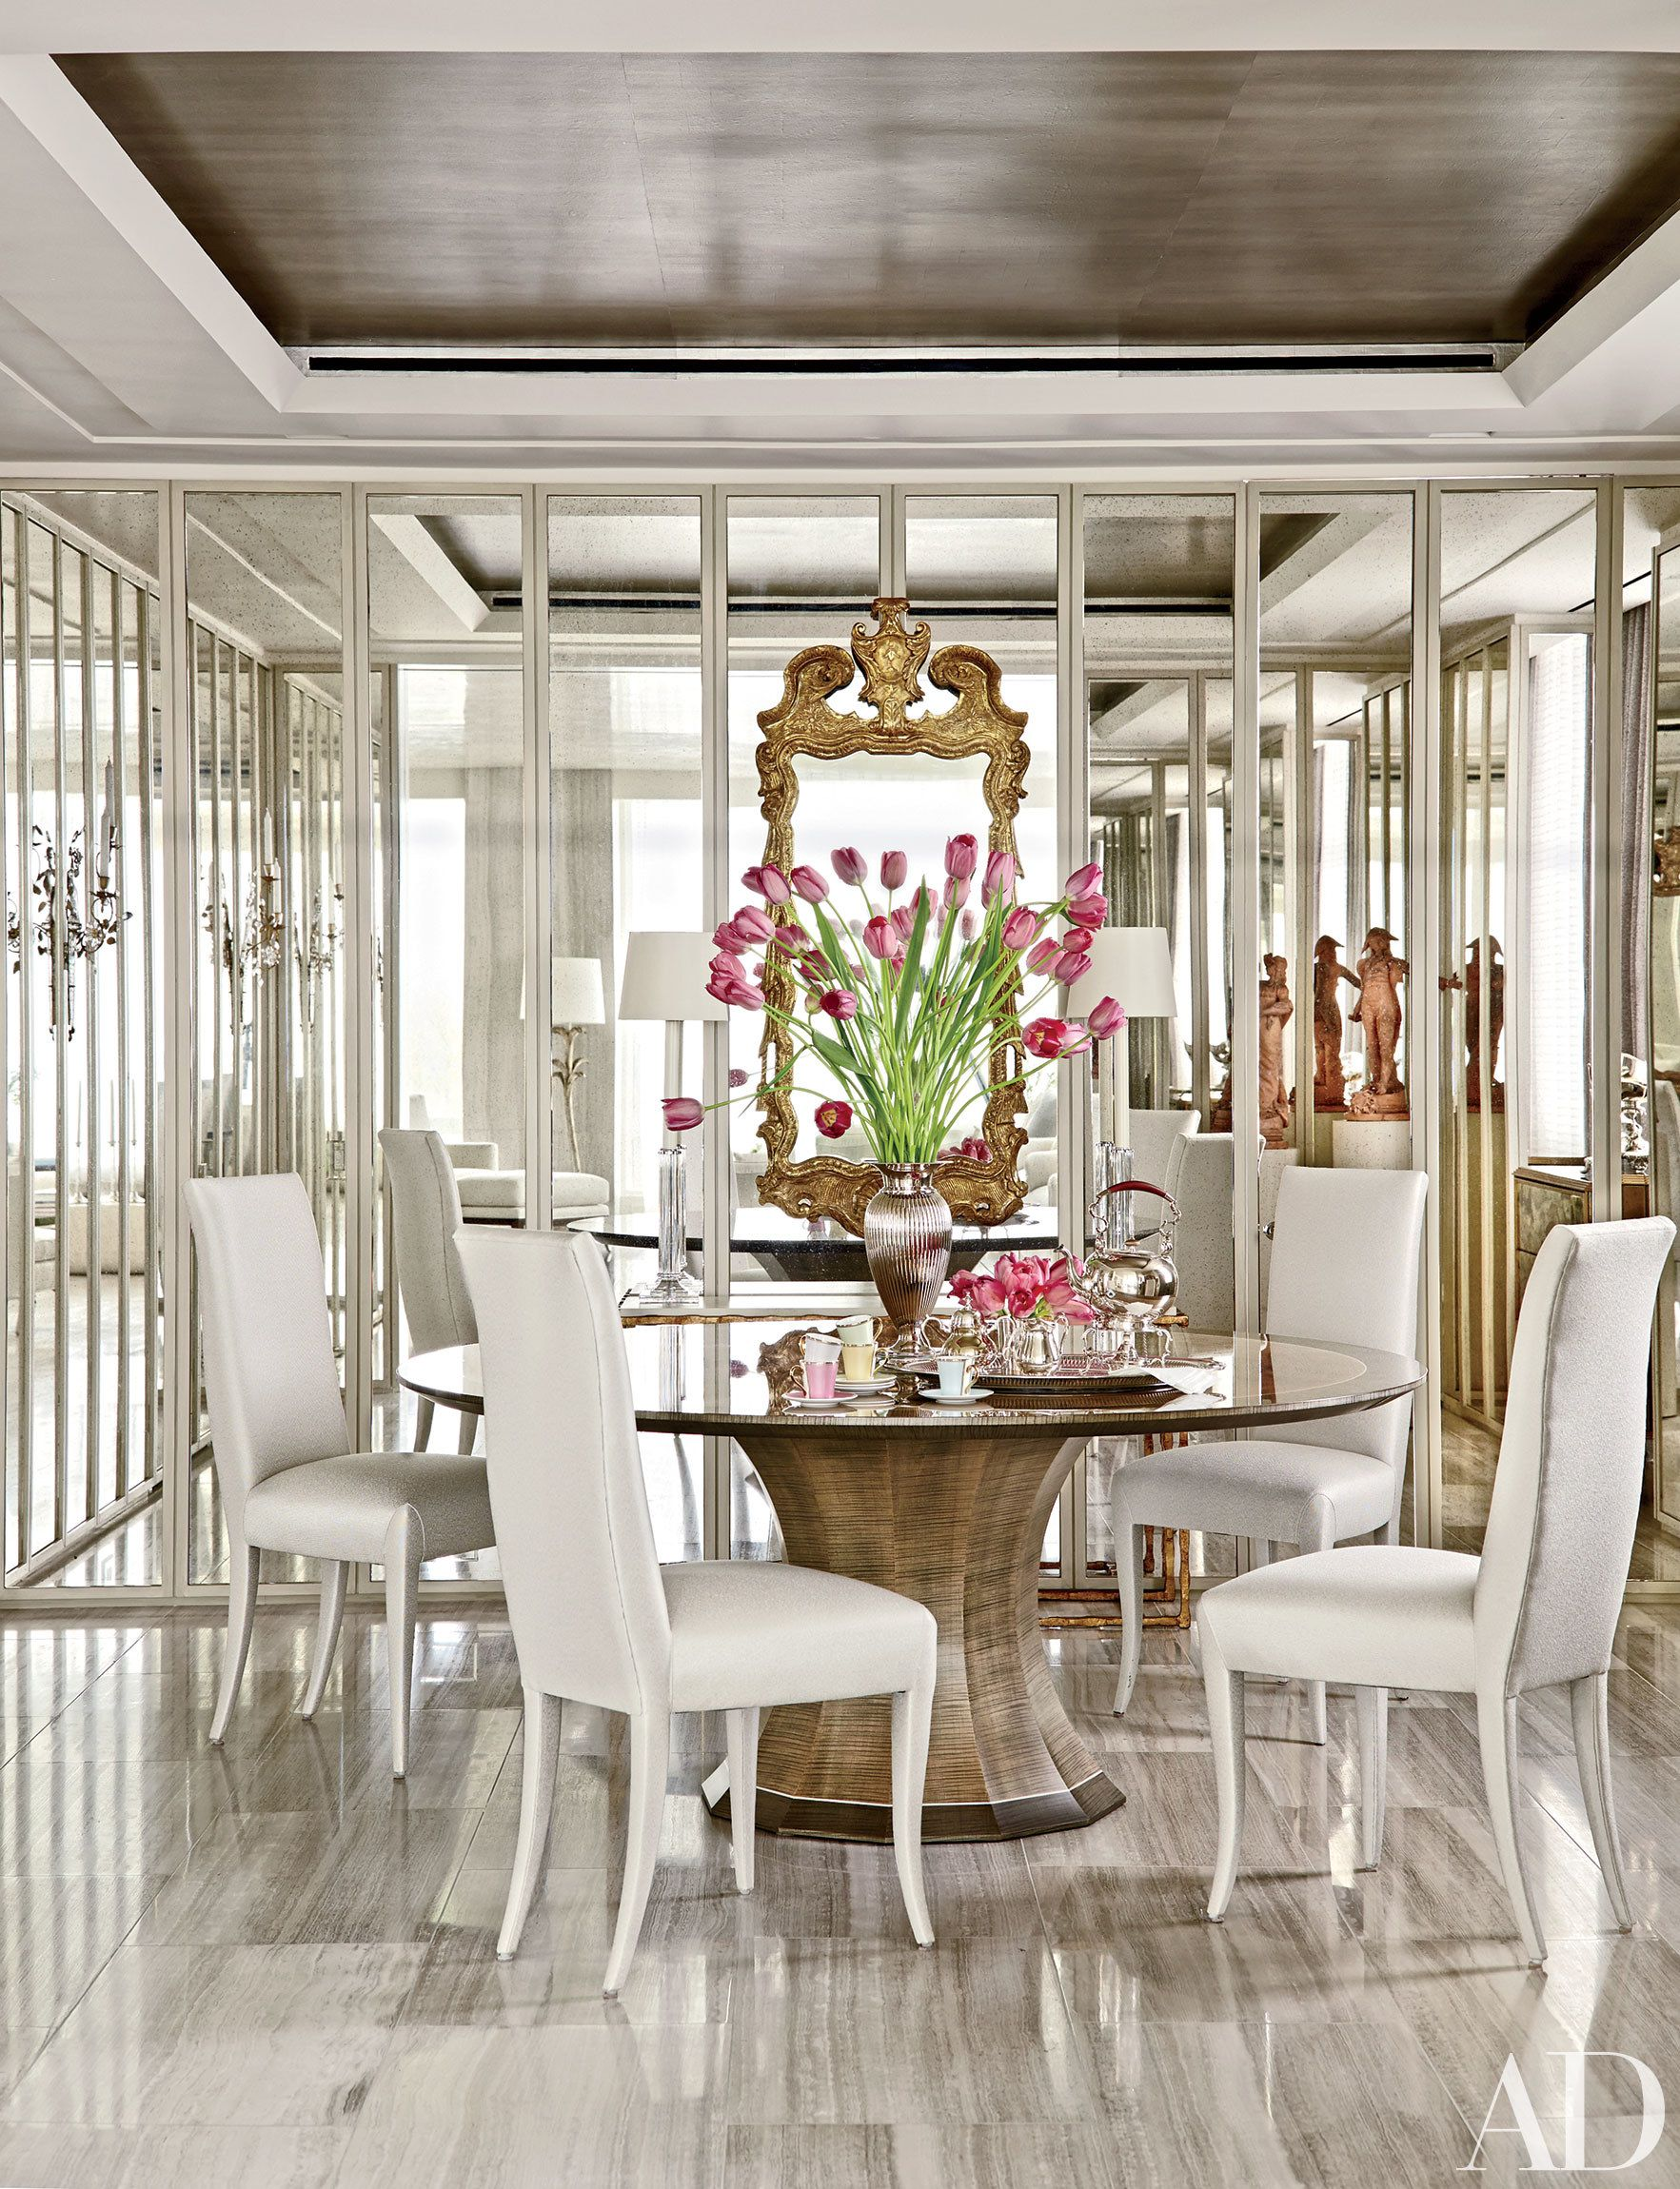 Dining Room Decor Before And After Design Photos